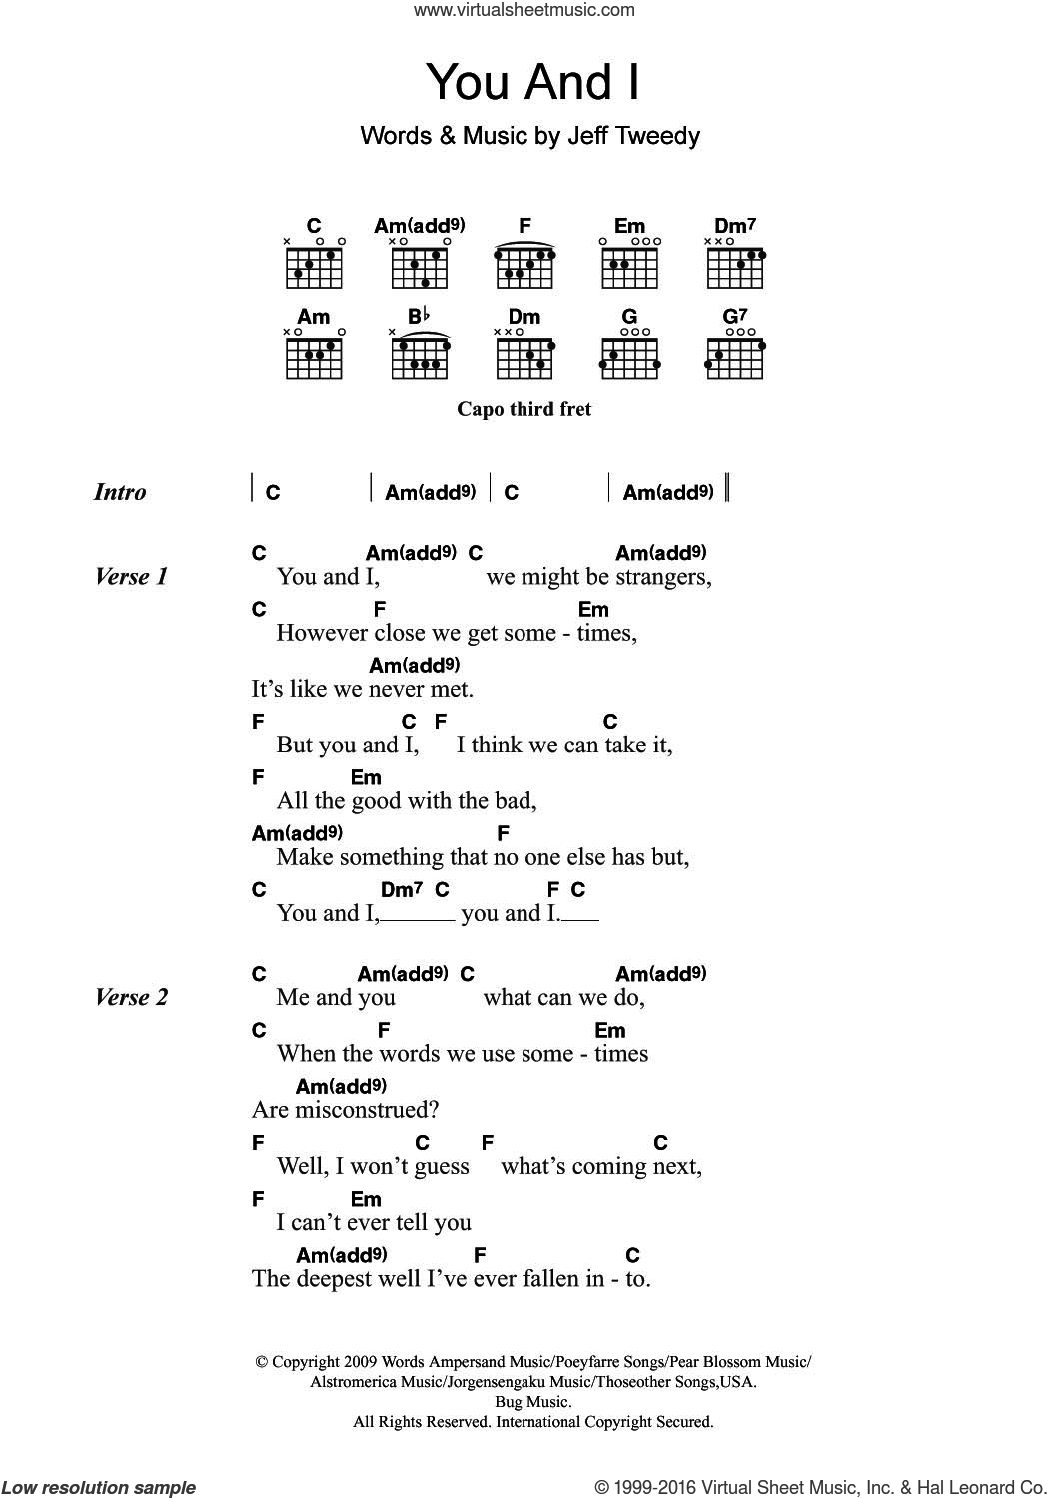 You And I (featuring Feist) sheet music for guitar (chords) by Jeff Tweedy, Leslie Feist and Wilco. Score Image Preview.